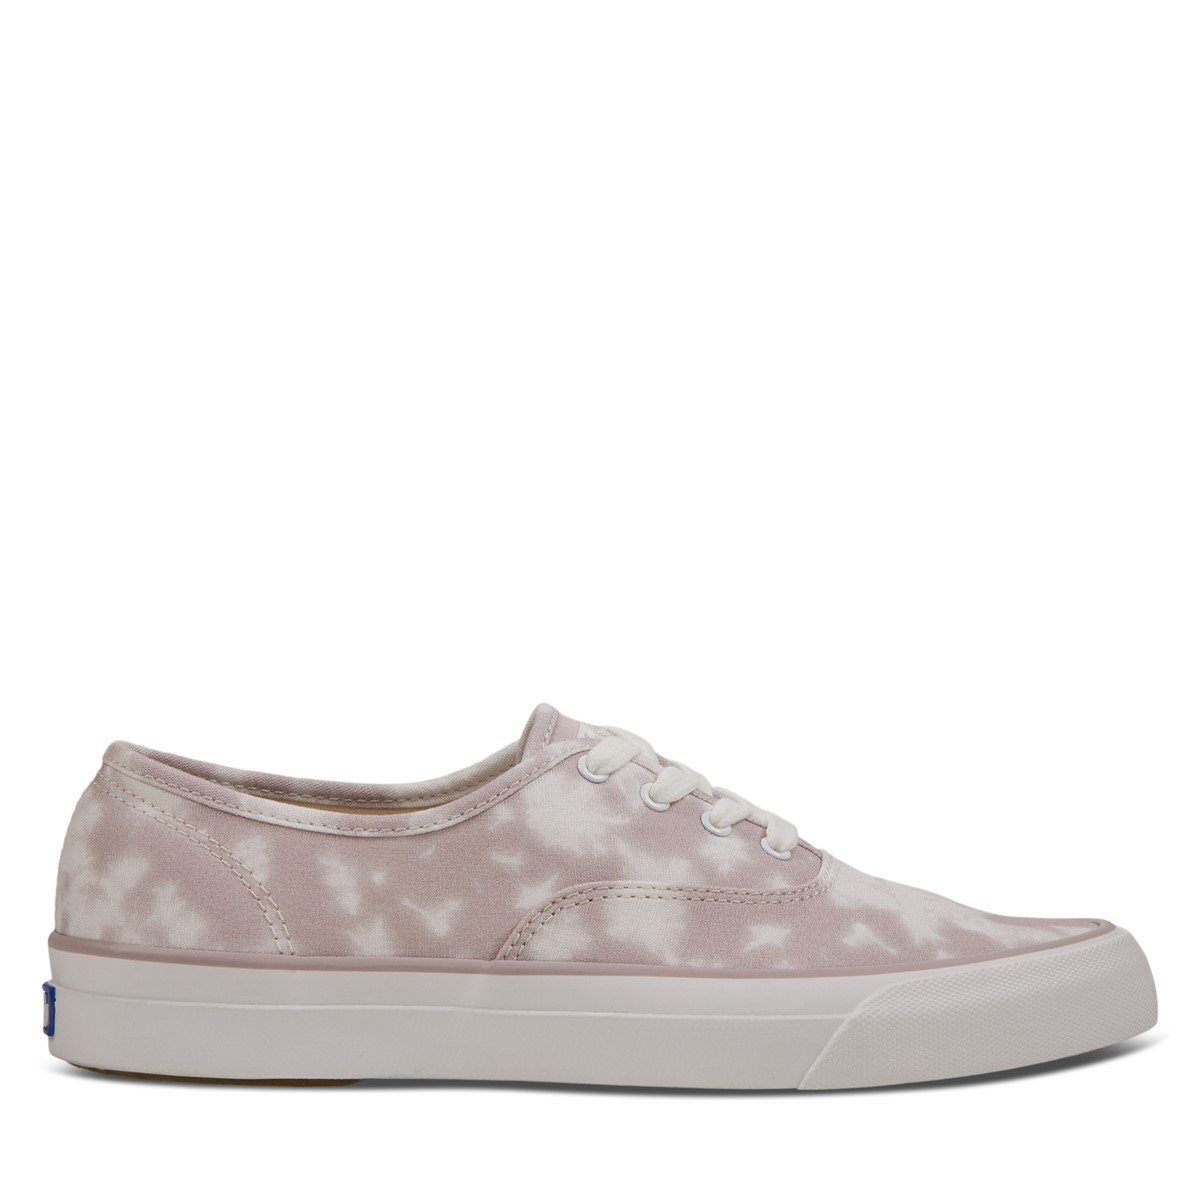 Women's Tie Dye Surfer Sneakers in Pink